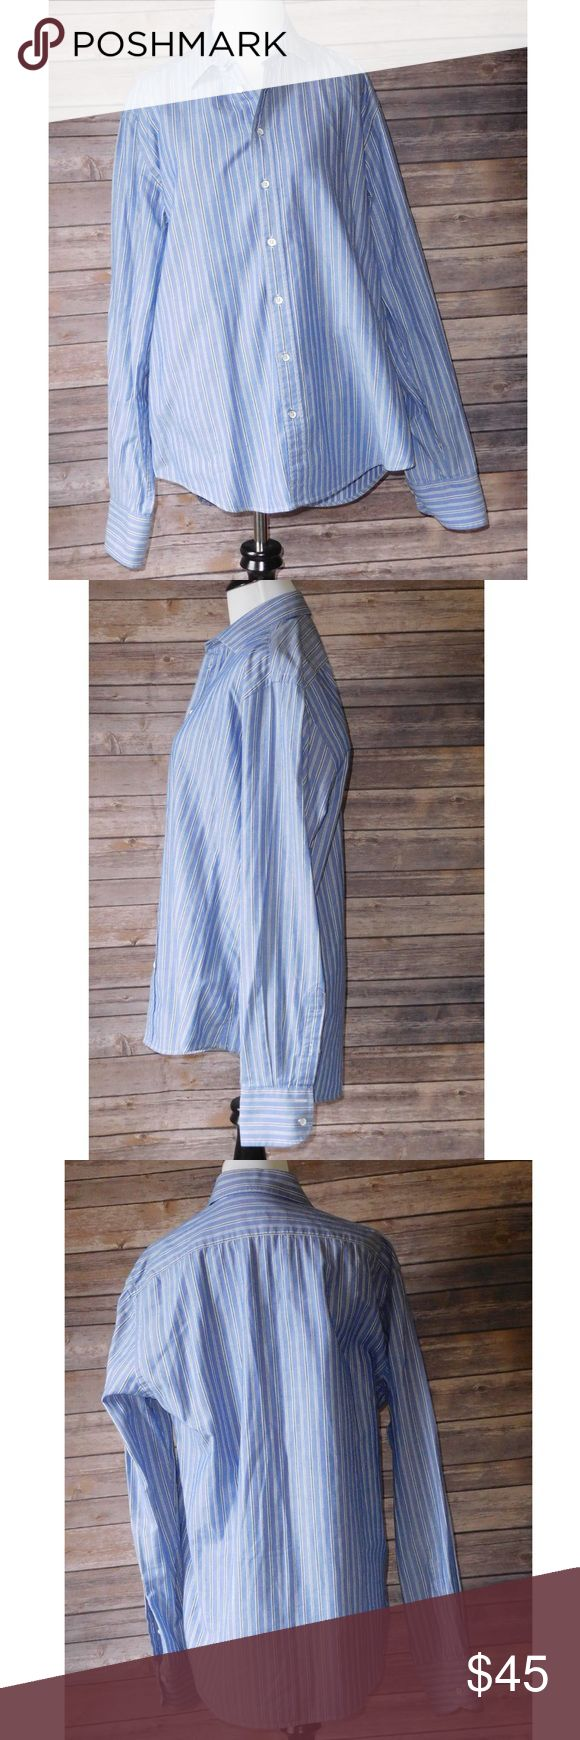 """Rag & Bone New York Blue Striped Button Up Blouse Gently used Women's Rag & Bone New York Career Blouse Long sleeve with striped print. 100% Cotton, Size 16 Retails $295!  Approximate Measurements Bust: 22"""" (measured pit to pit) Length: 29"""" Shoulder to hem: 26 1/2"""" Shoulder seam to cuff: 26""""     ❌I do NOT trade ❌ 🛍10% off 2+ item bundles 📸Instagram @Yami.Boutique (Exclusive Pop Up Discount codes ONLY for my followers!) rag & bone Tops Button Down Shirts"""